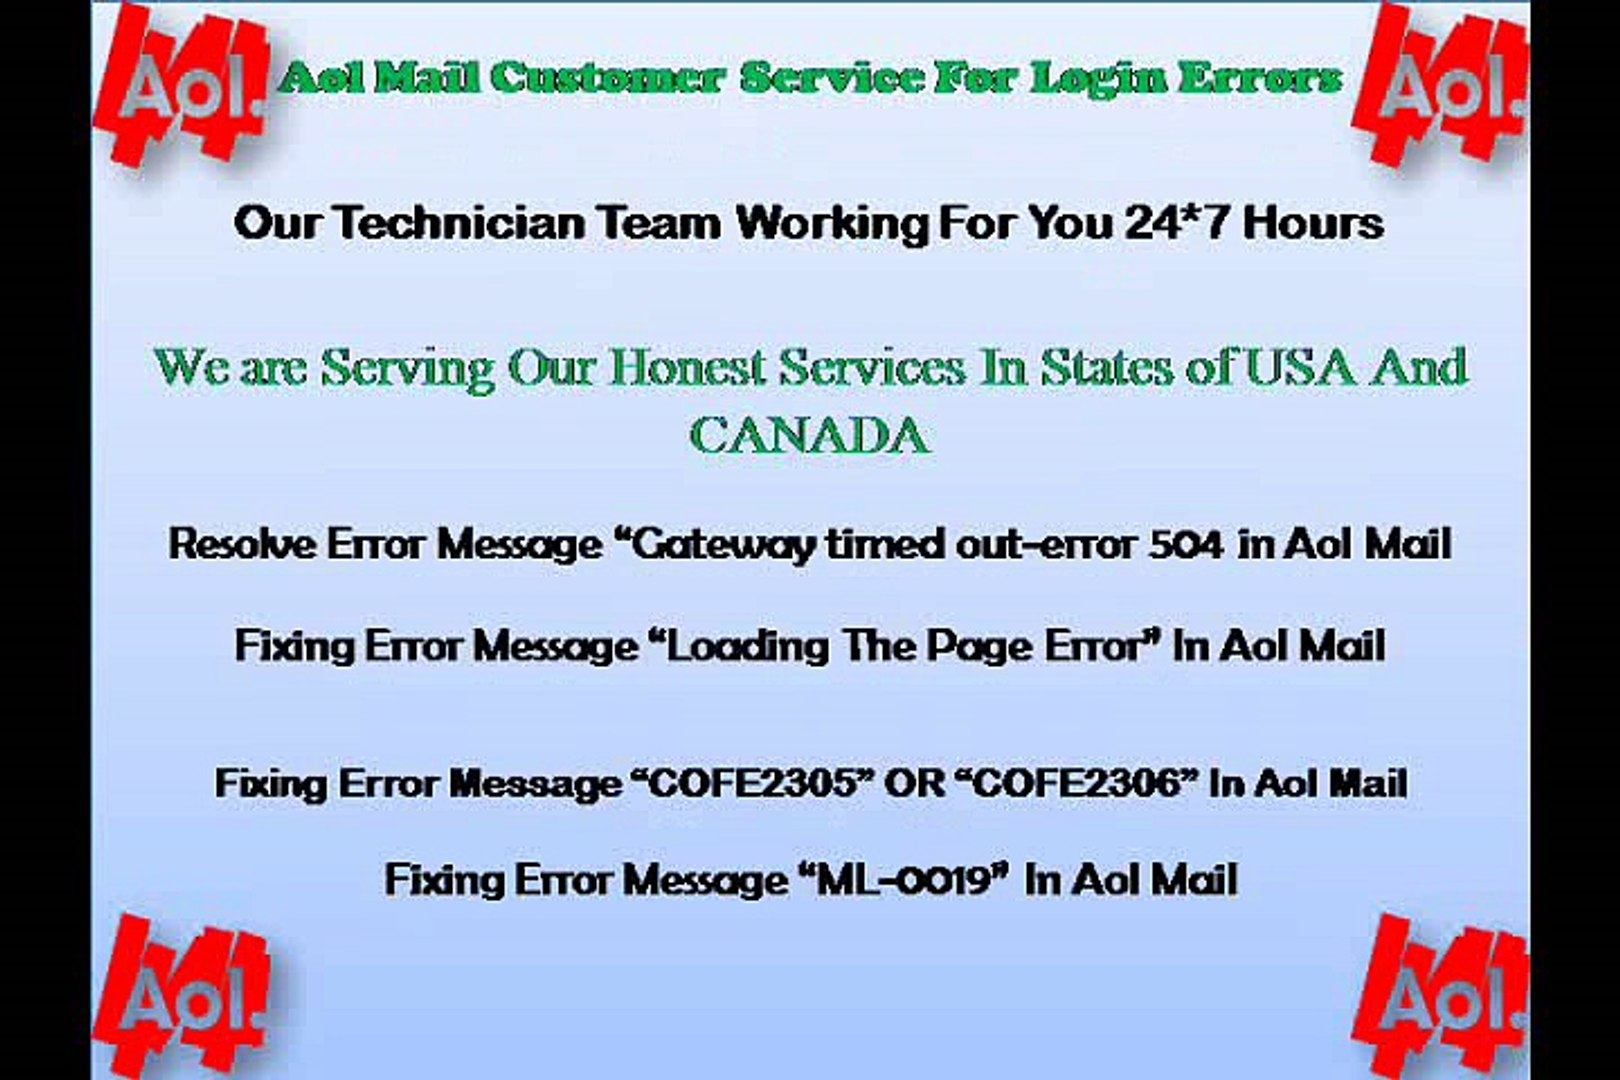 Aol Mail Customer Support For Login Issues